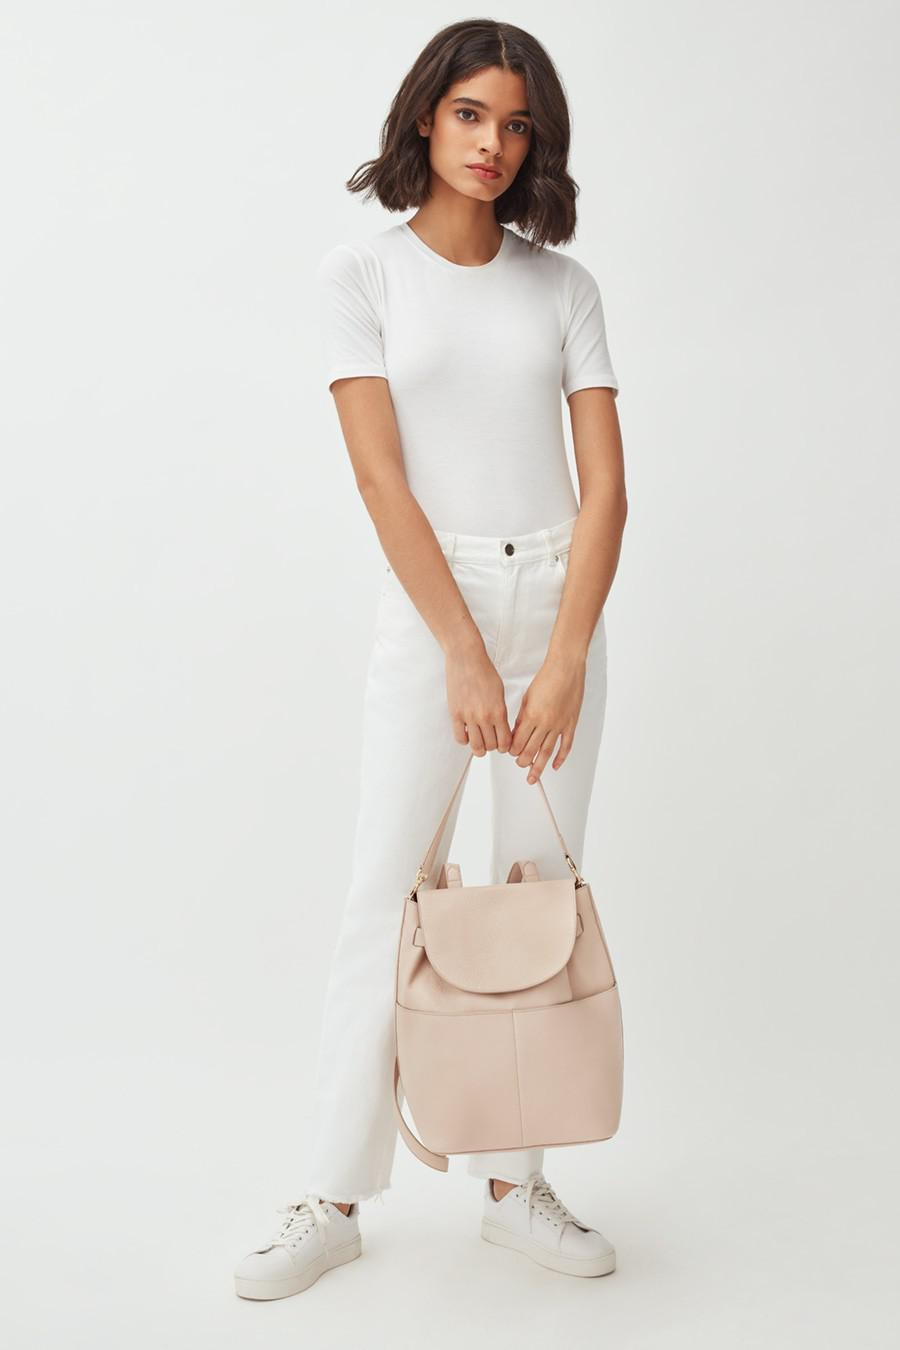 Women's Leather Backpack in Blush Pink | Pebbled Leather by Cuyana 5